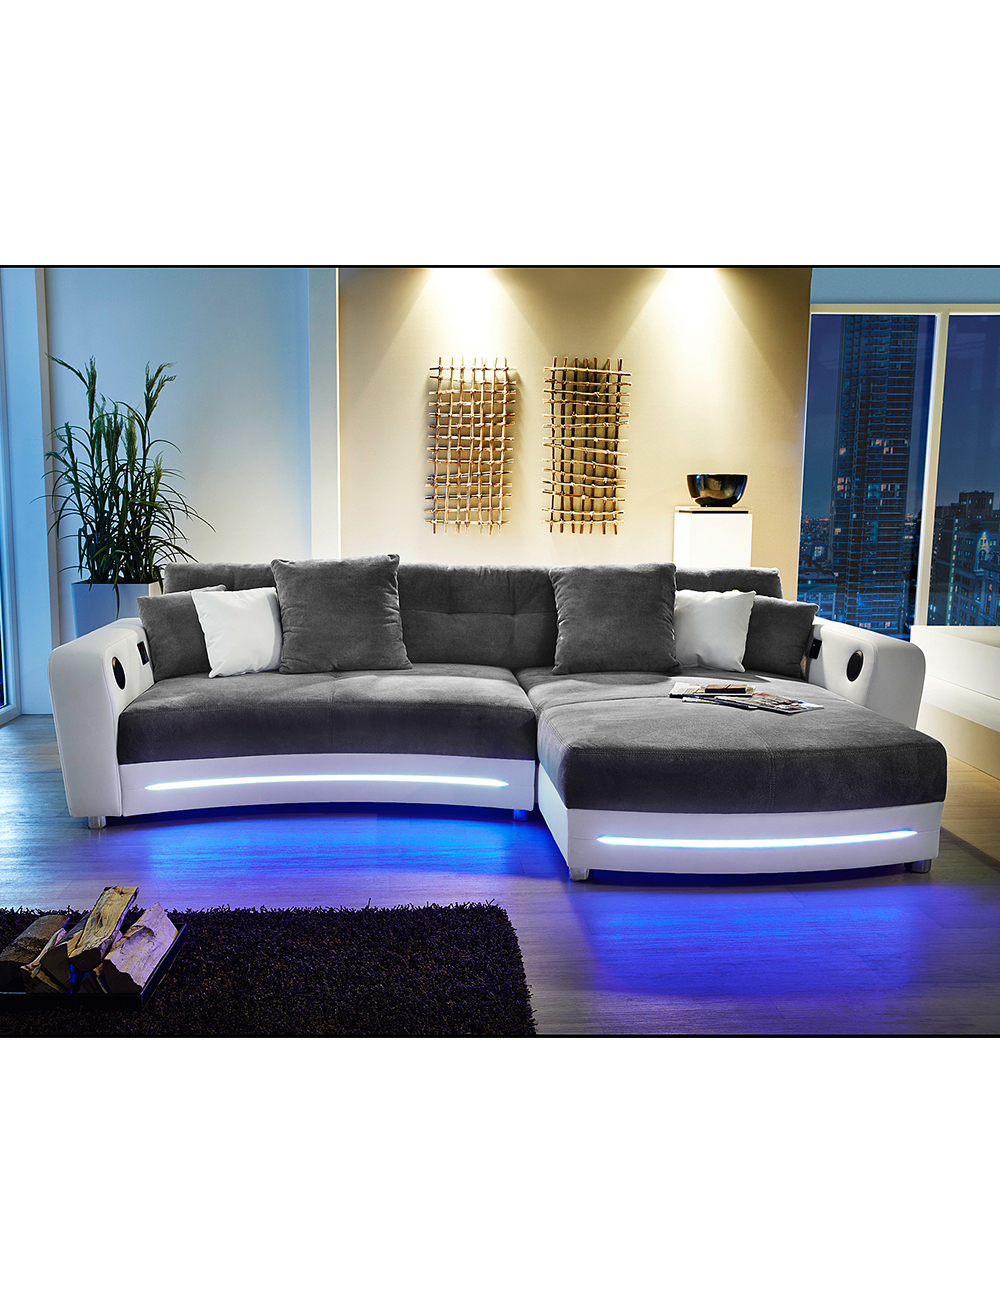 ecksofa party weiss grau mit beleuchtungsleiste und soundsystem. Black Bedroom Furniture Sets. Home Design Ideas